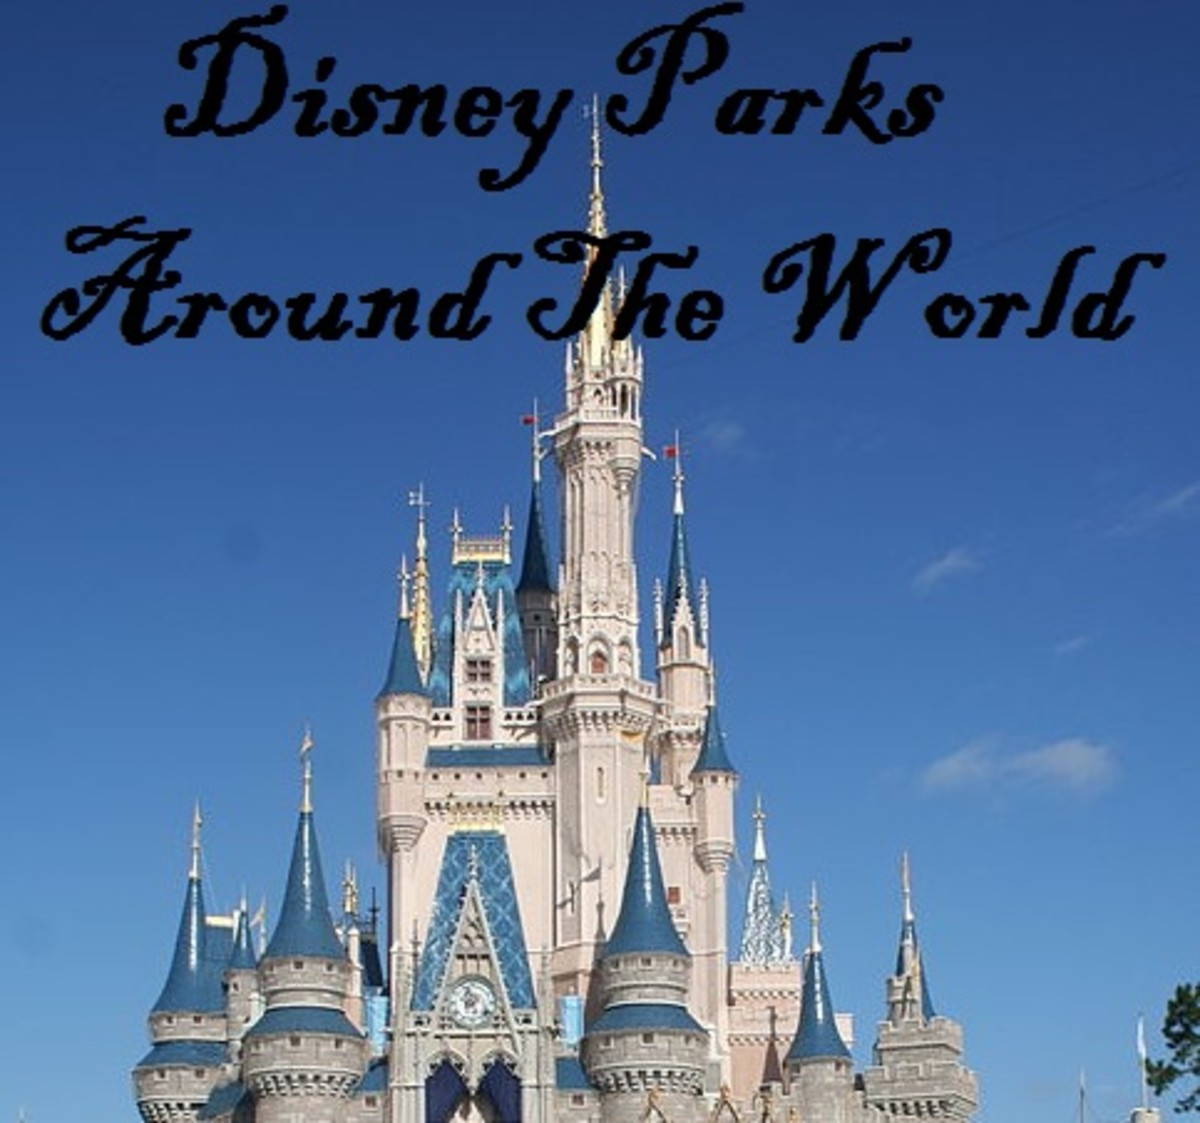 Listing and Description of All Disney Parks Around The World